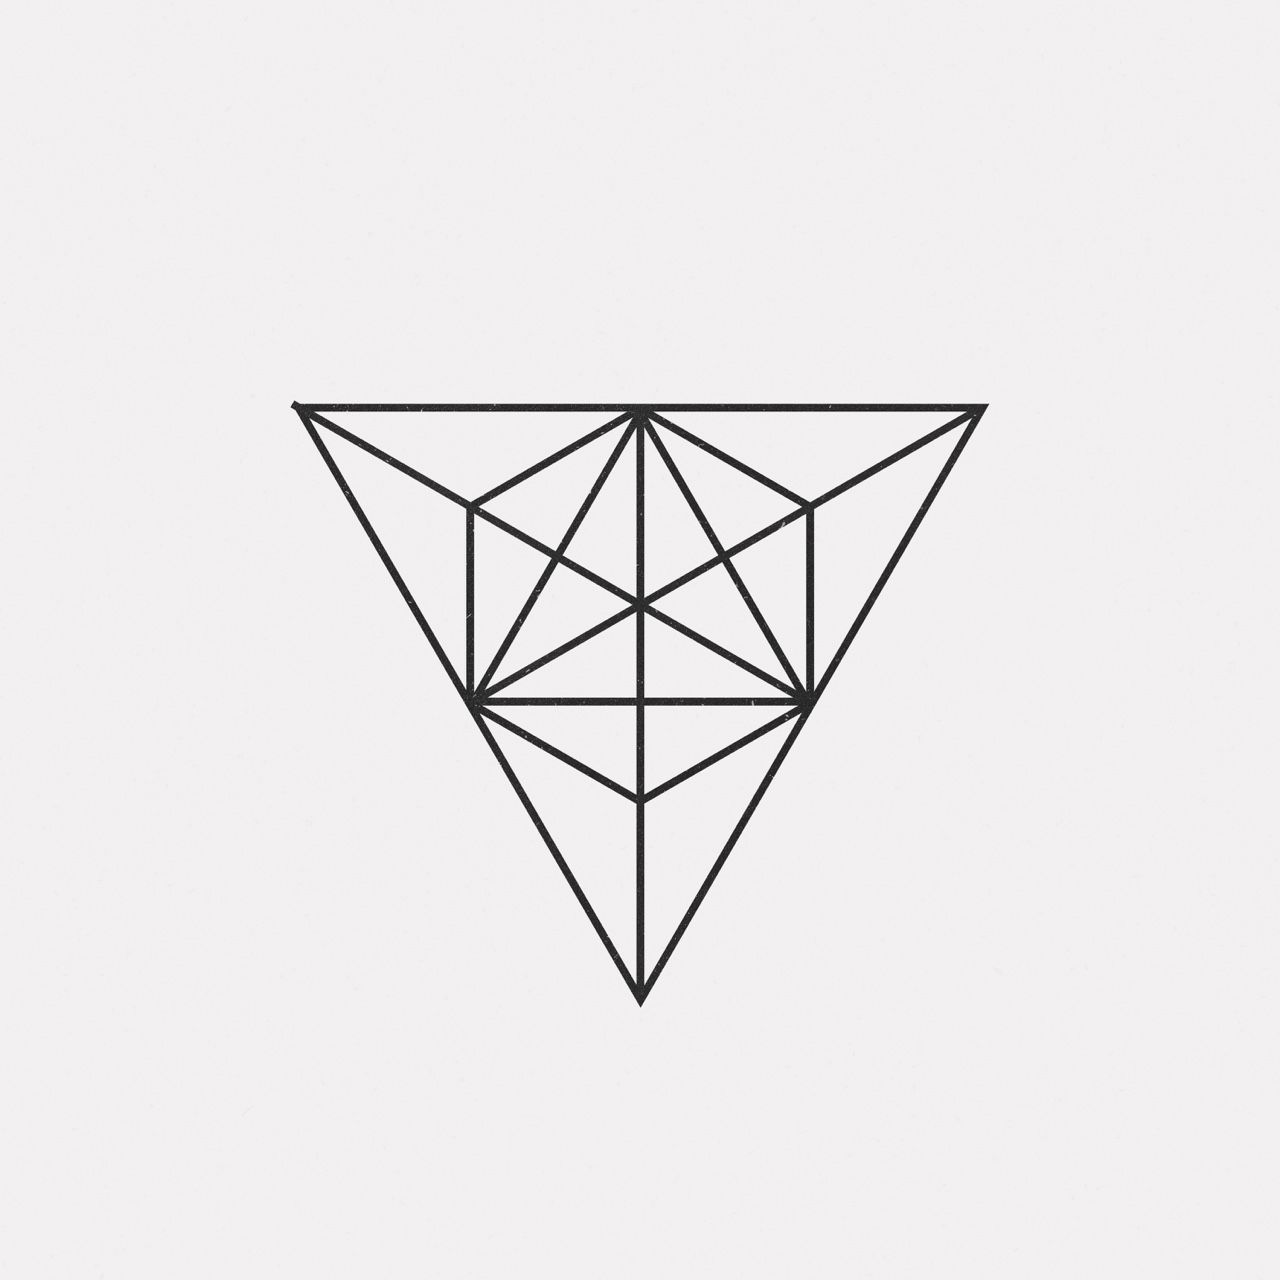 A new geometric design every day triangles minimal ashraa a new geometric design every day triangles minimal ashraa pinterest geometric designs minimal and triangles biocorpaavc Gallery